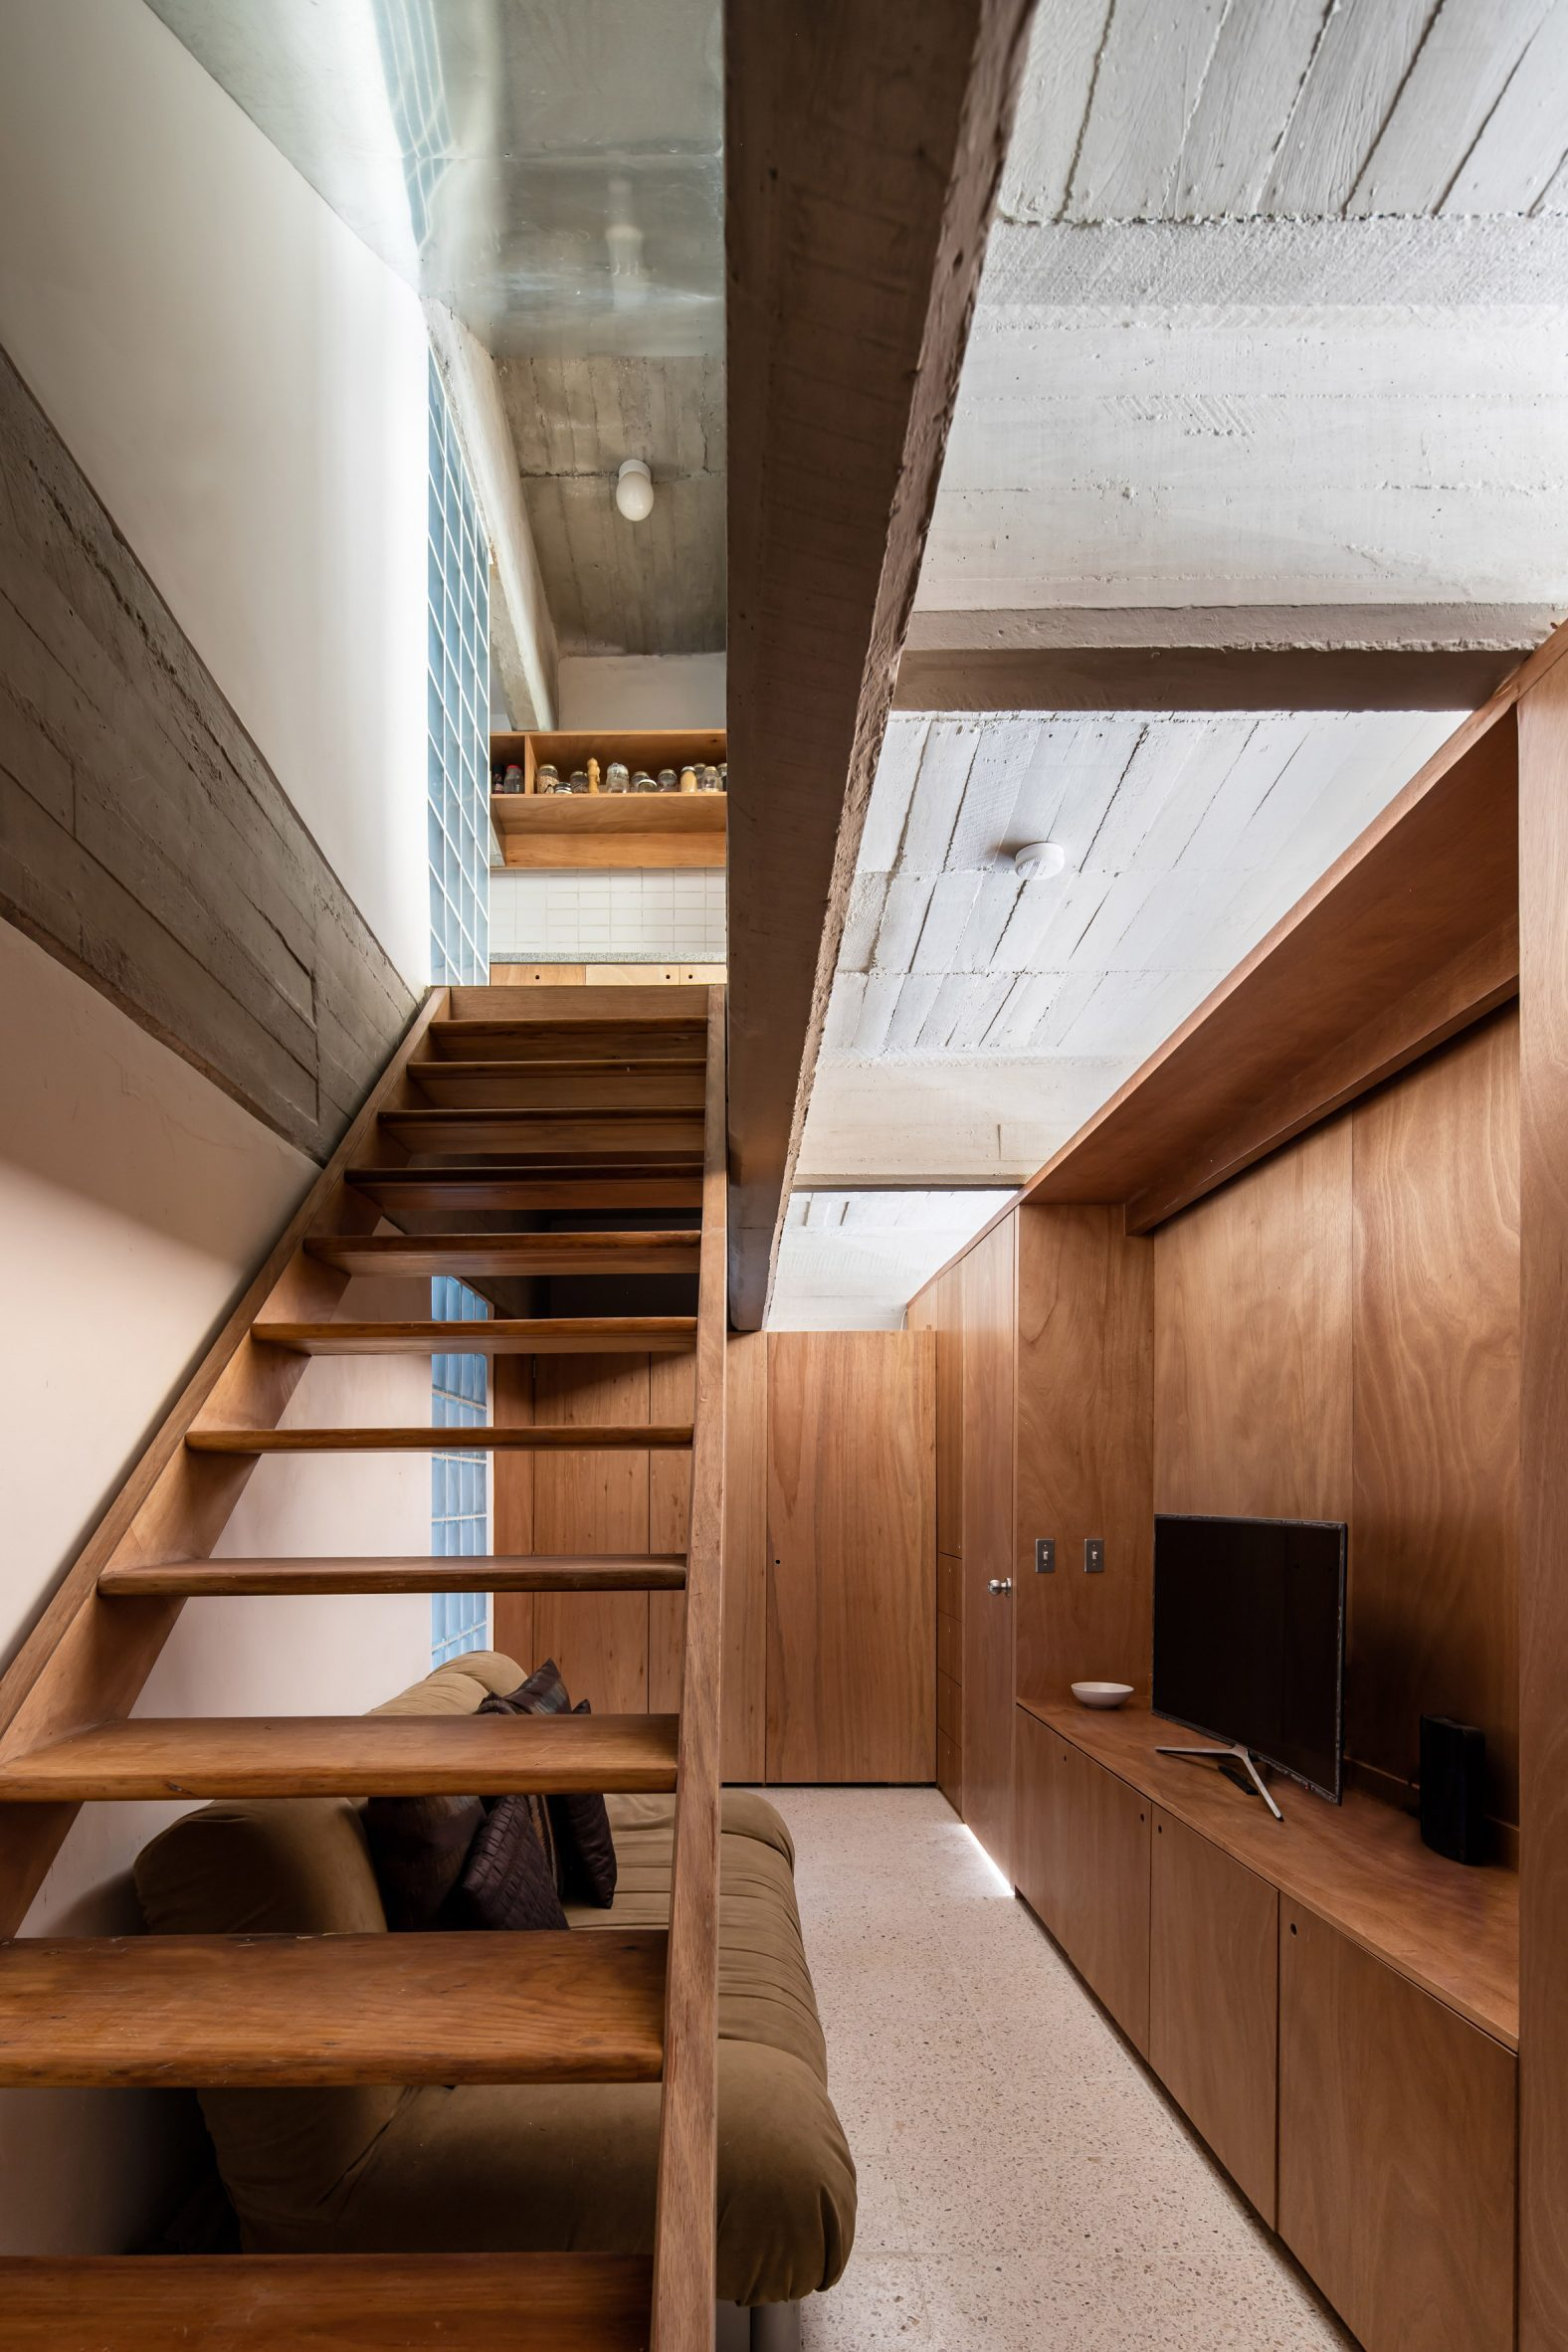 Modified wooden staircase